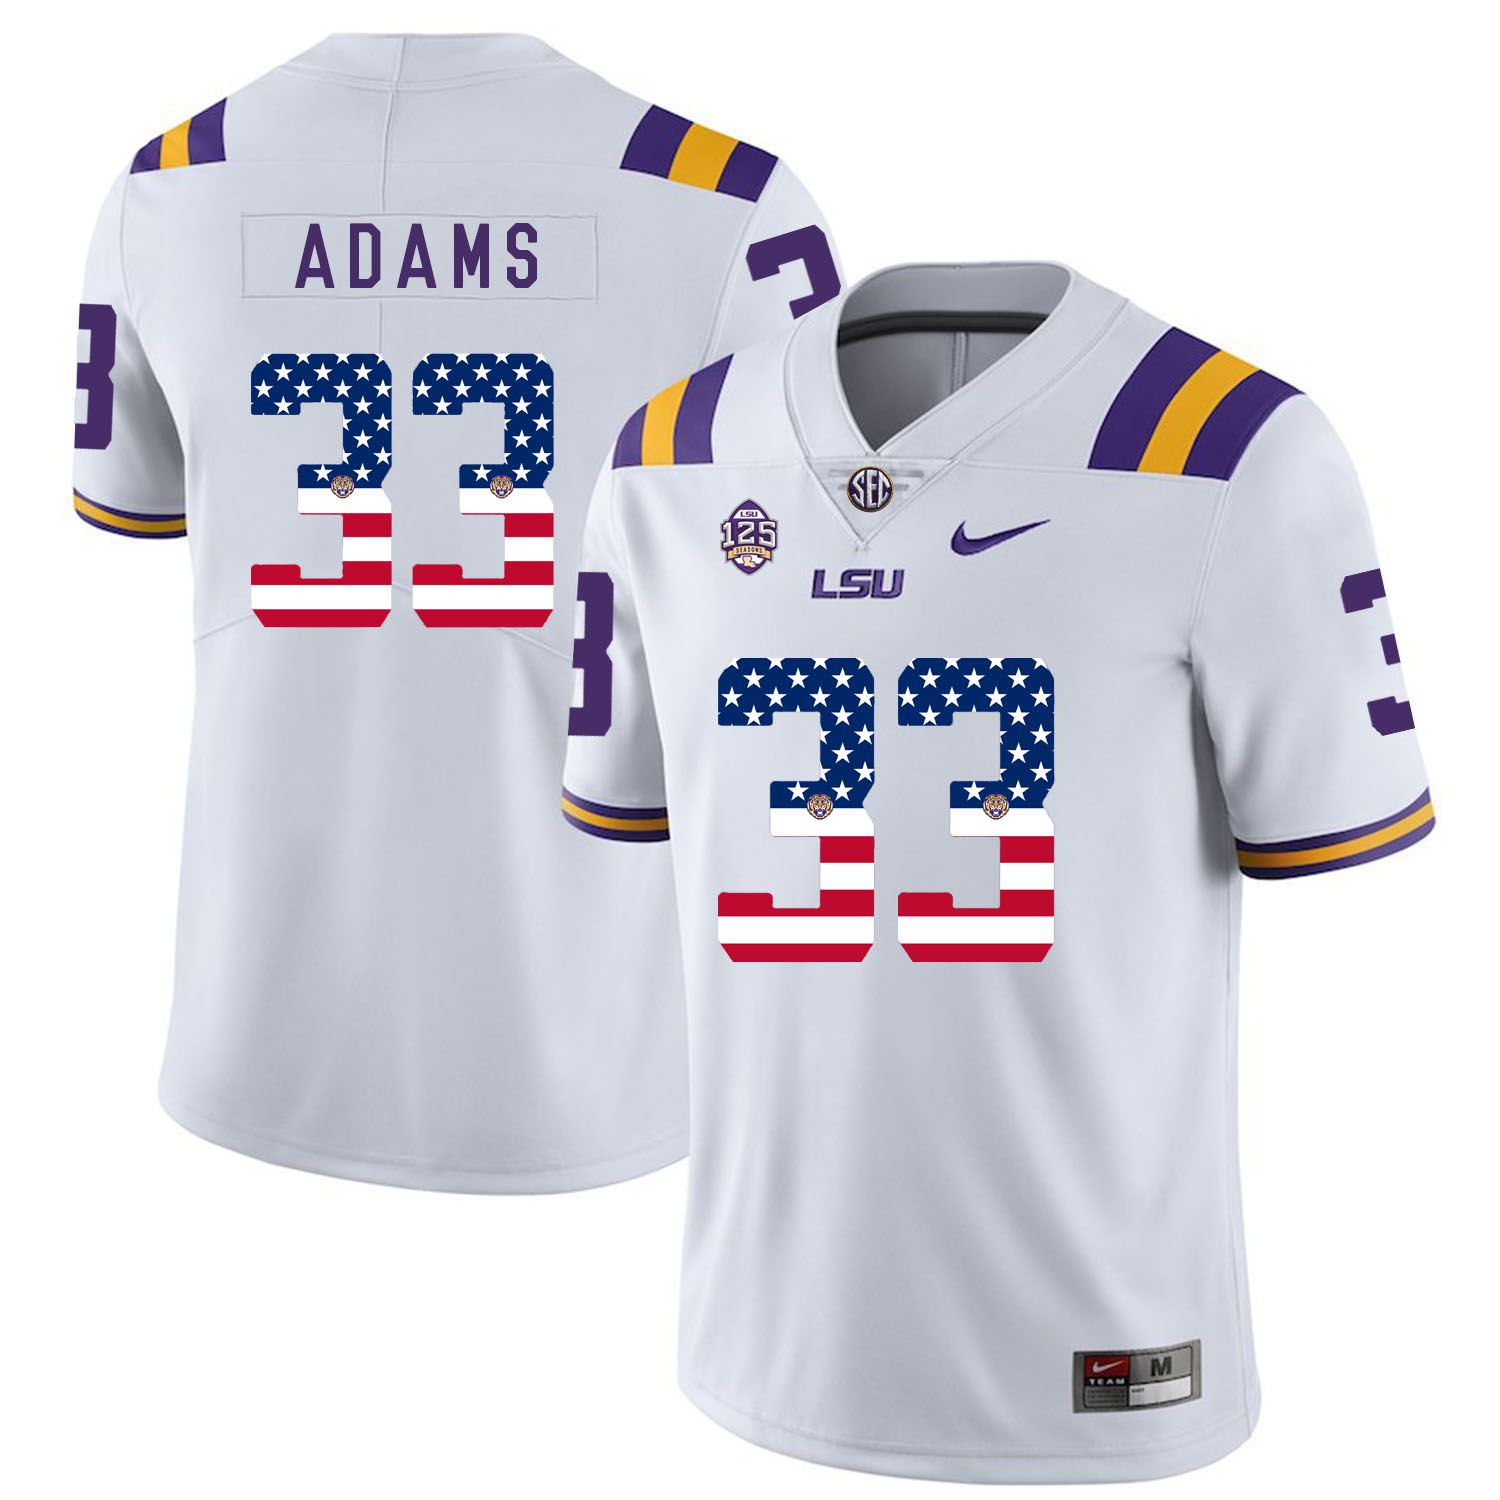 Men LSU Tigers 33 Adams White Flag Customized NCAA Jerseys